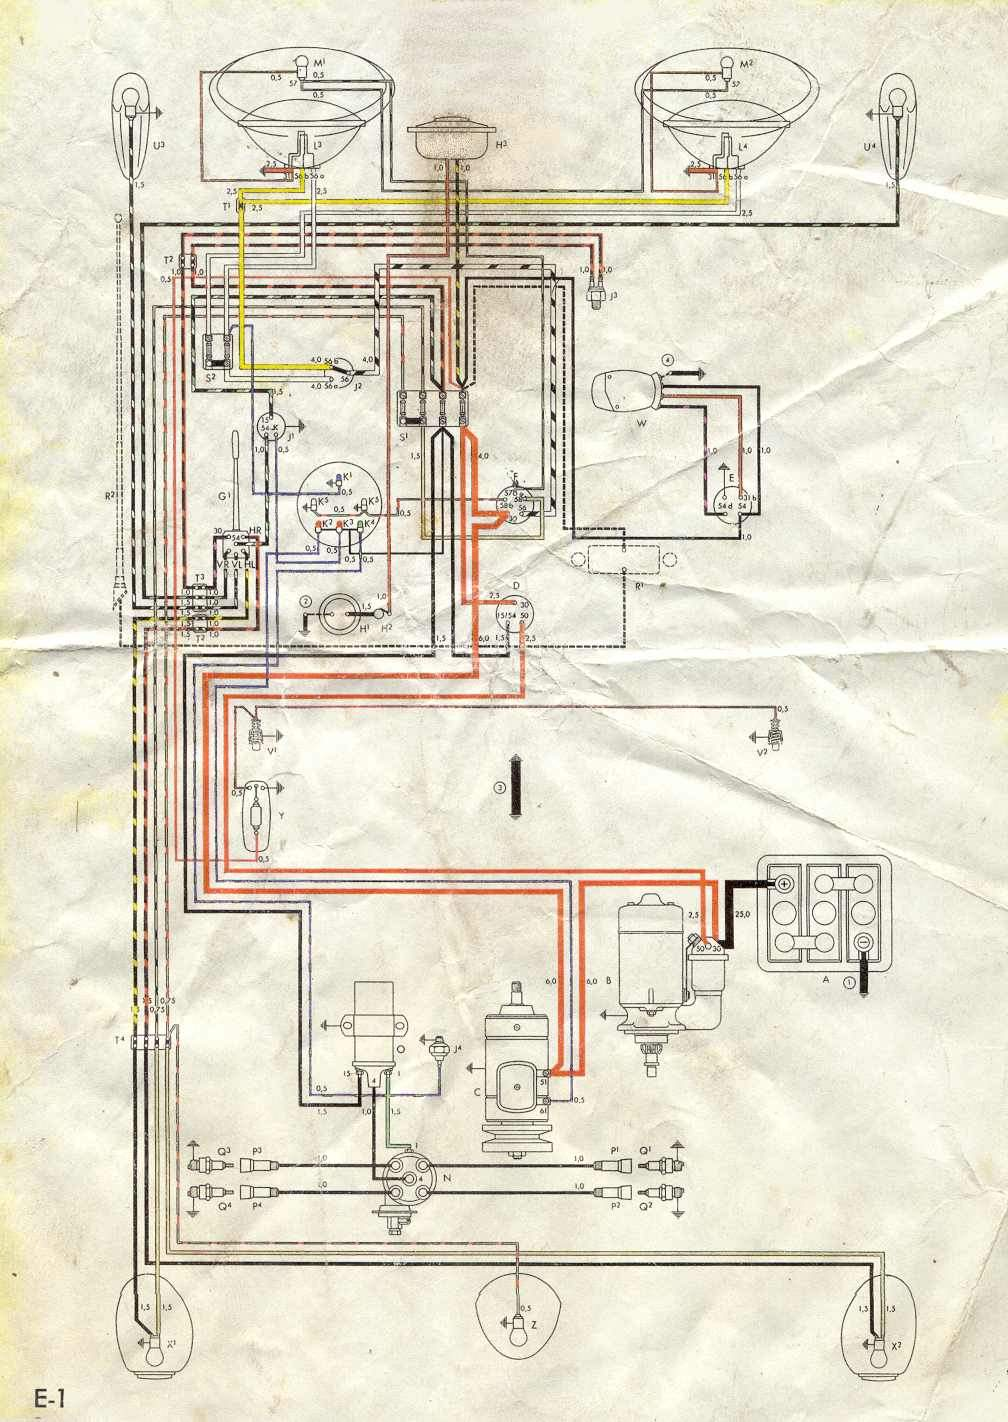 egine wireing diagram for 1959 voljswagen